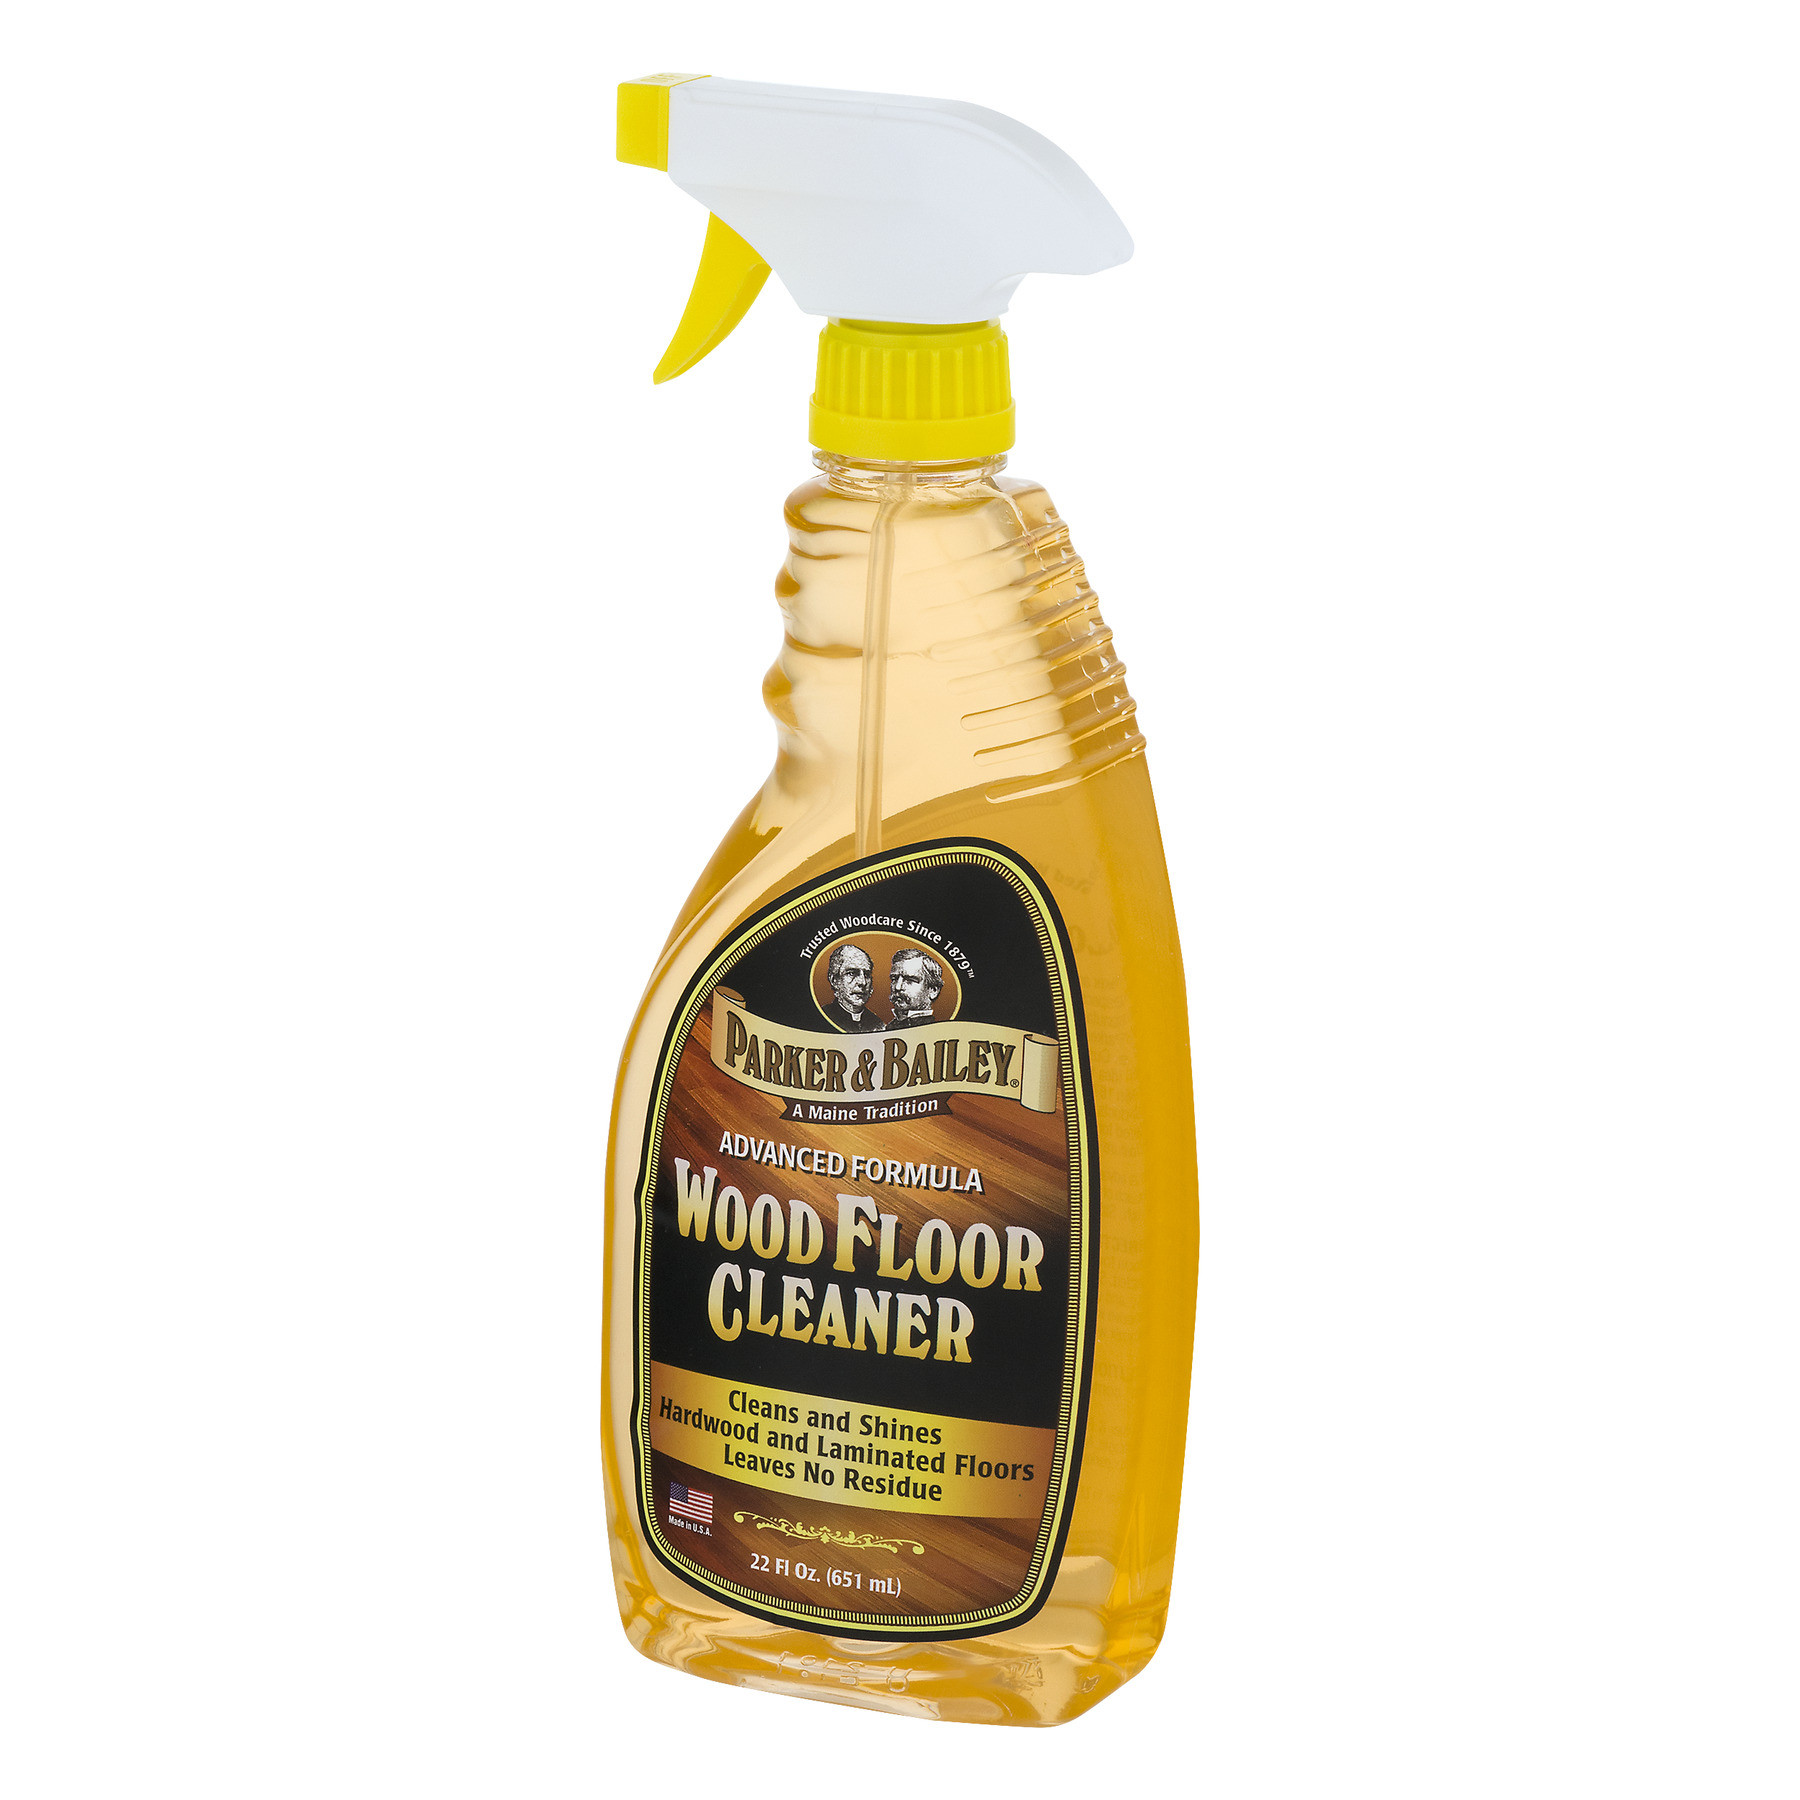 hardwood floor cleaner that doesn t leave residue of parker bailey wood floor cleaner 22 oz spray bottle walmart com for dd45e528 d3f3 4bcc 9d9e 417c540d13e4 1 0449fe5d99394743a208df811c0347ff